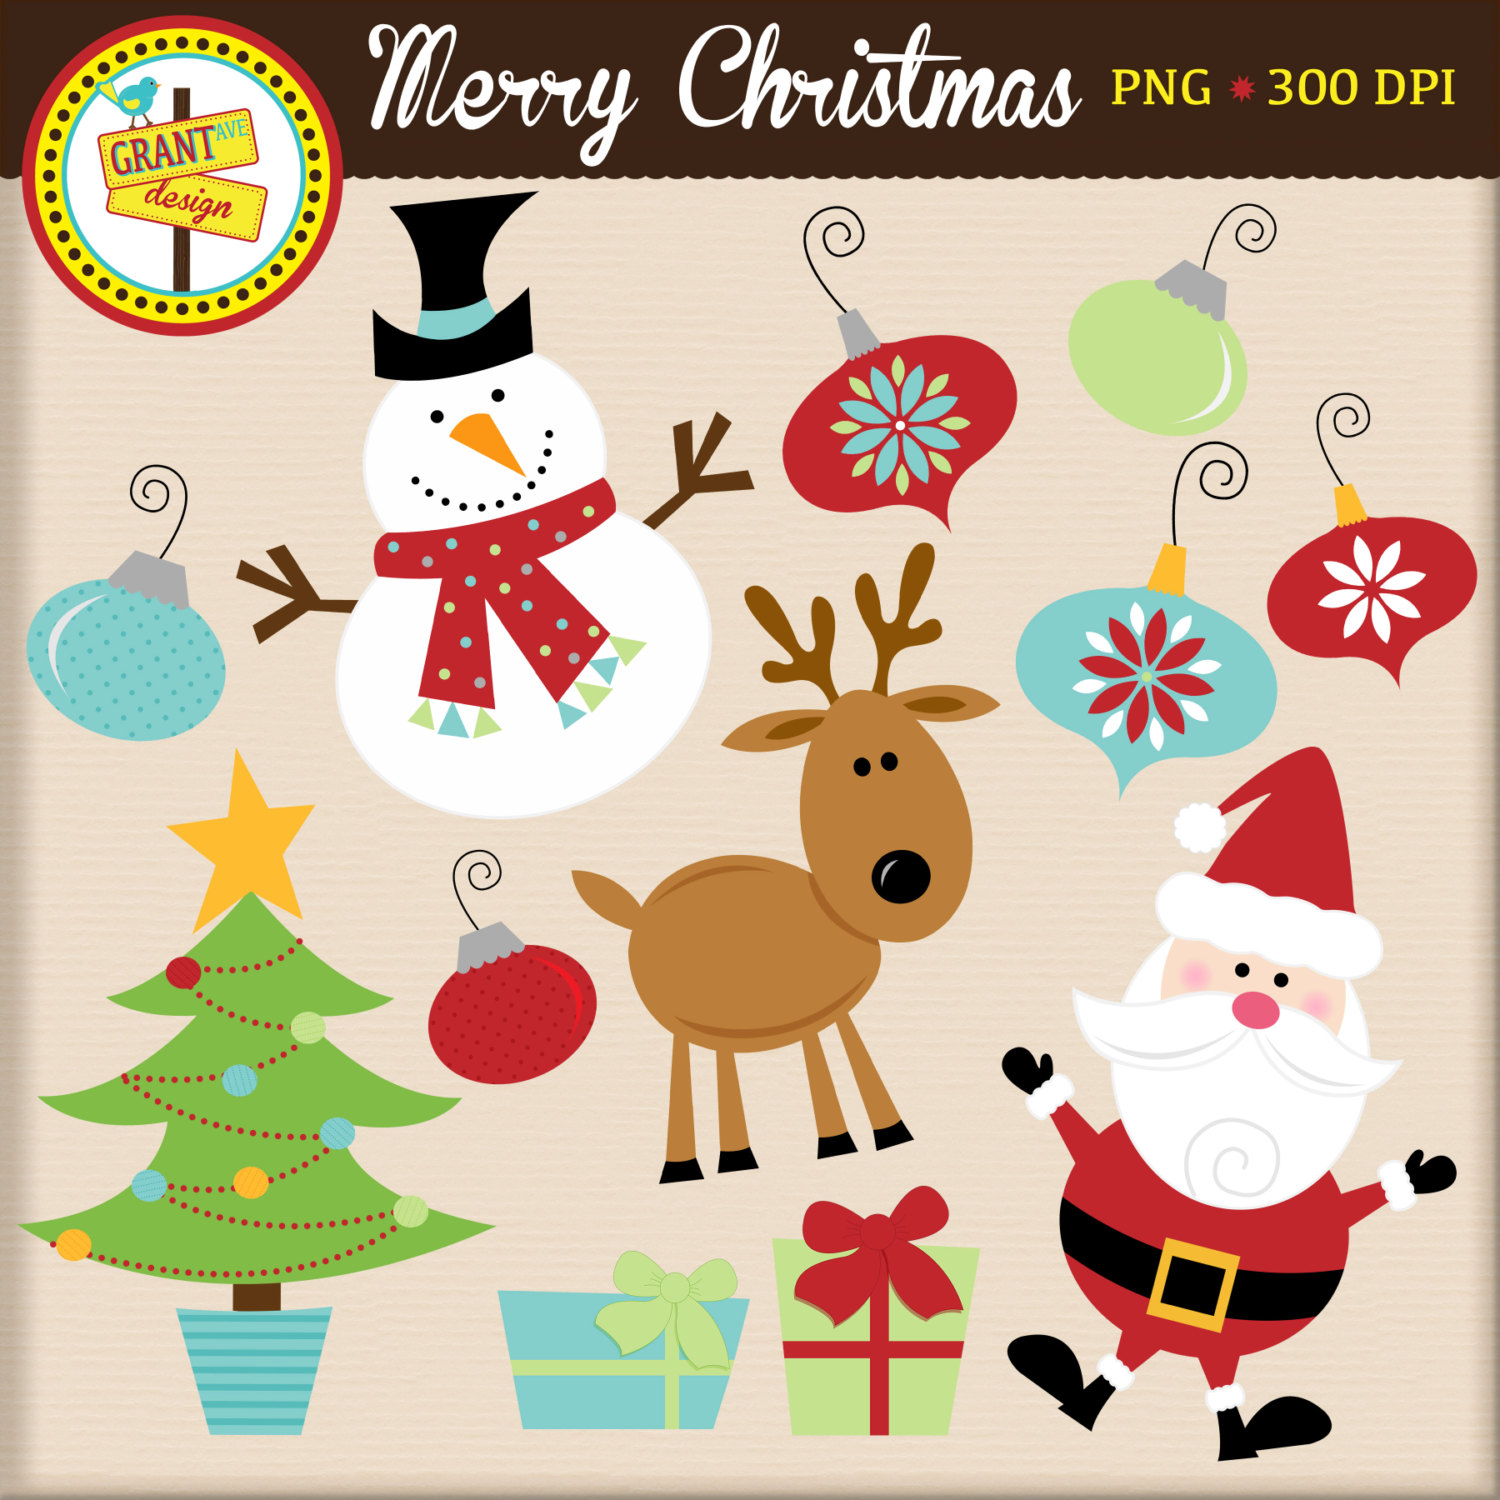 Marvellous design cute simply. Dojo clipart christmas graphic black and white download